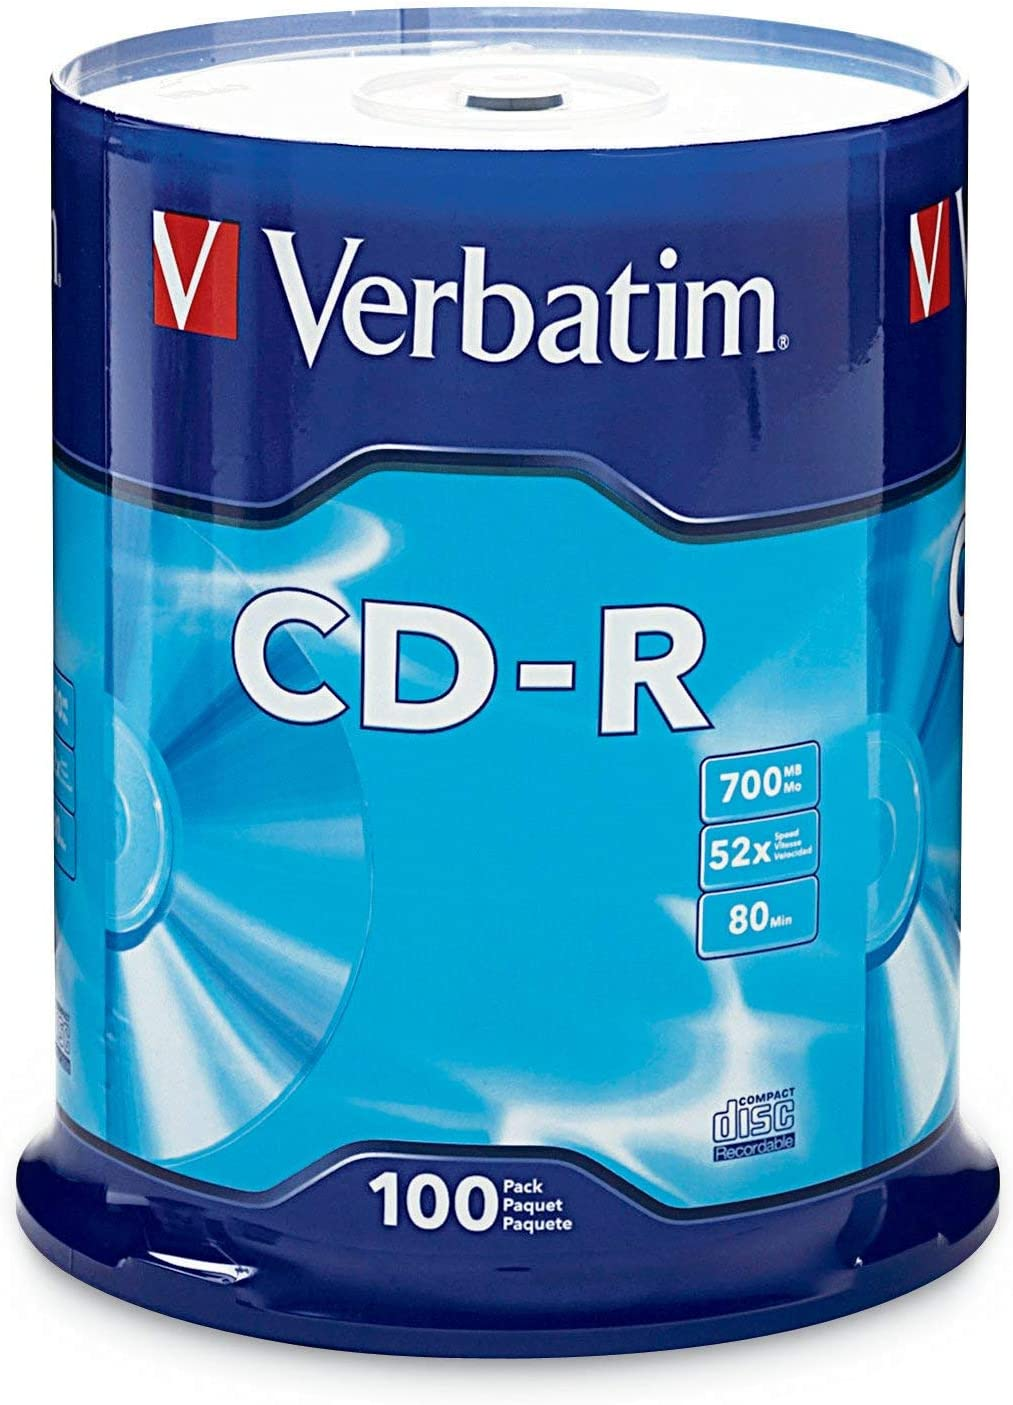 Verbatim CD-R 700MB 80 Minute 52x Recordable Disc for Data and Music - 100 Pack Spindle, Silver